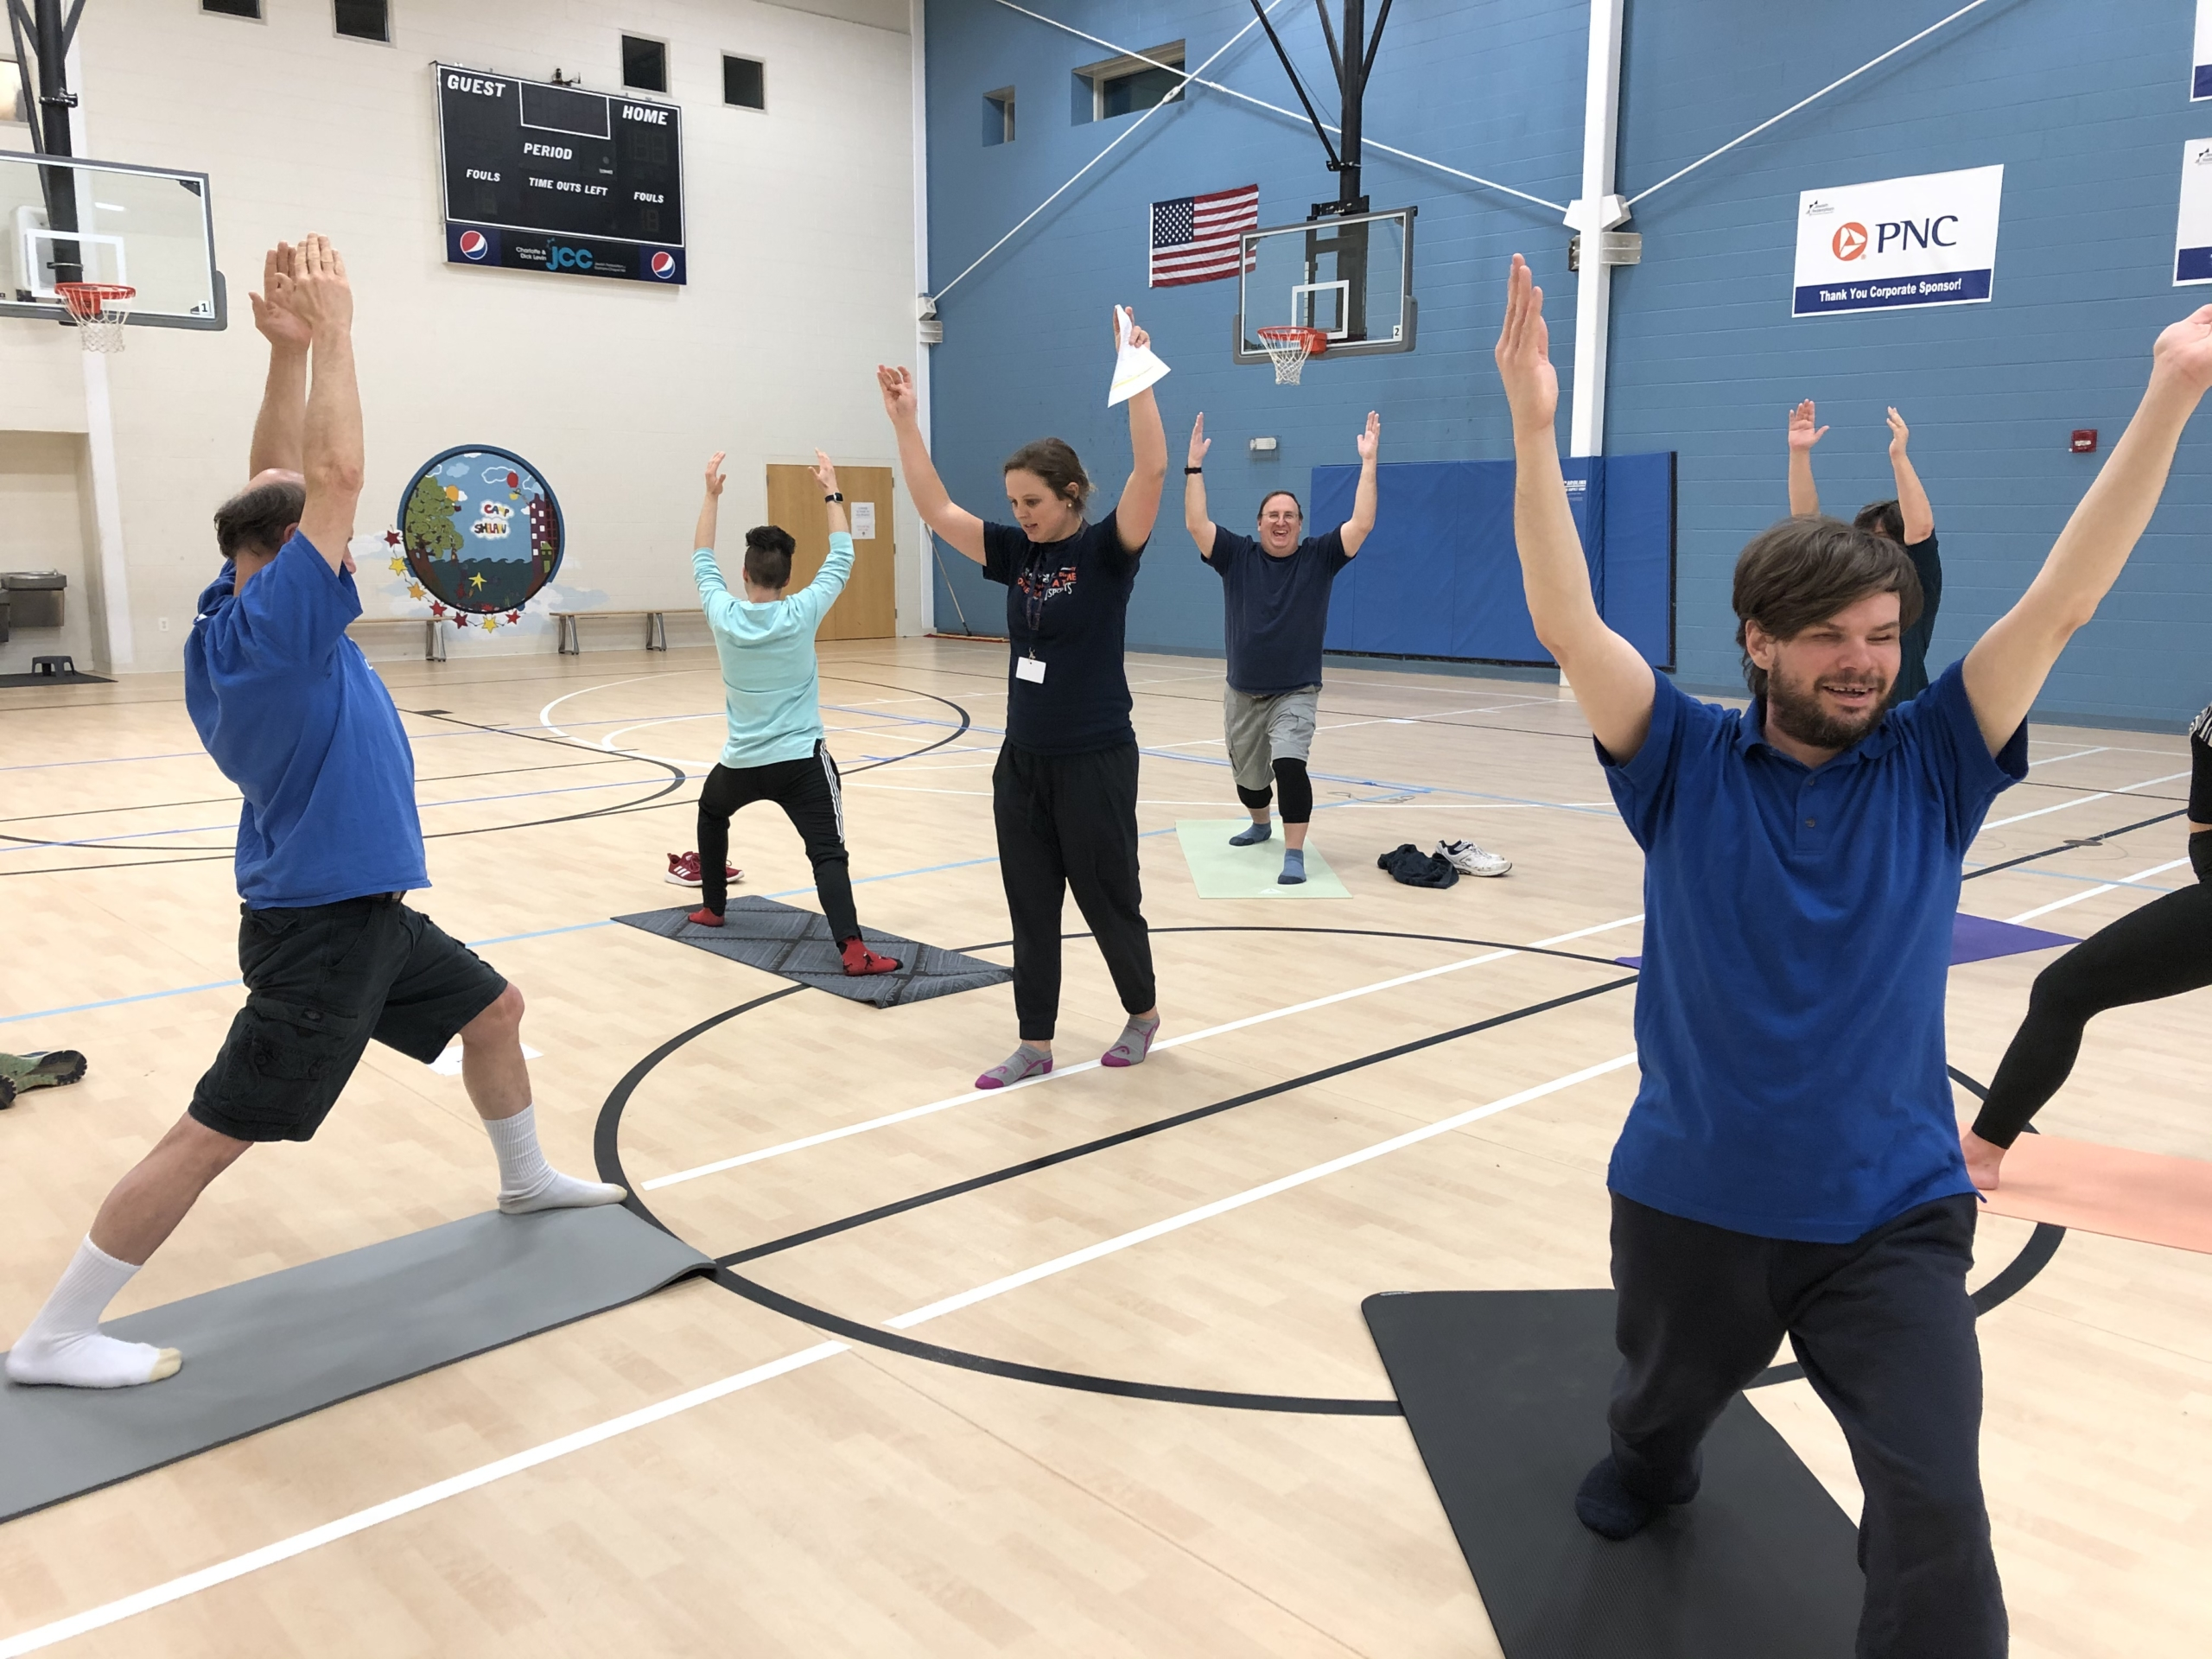 Athletes with visual impairments at Goalball practice doing yoga poses with arms over their heads with program intern Jessica in the middle leading the activity